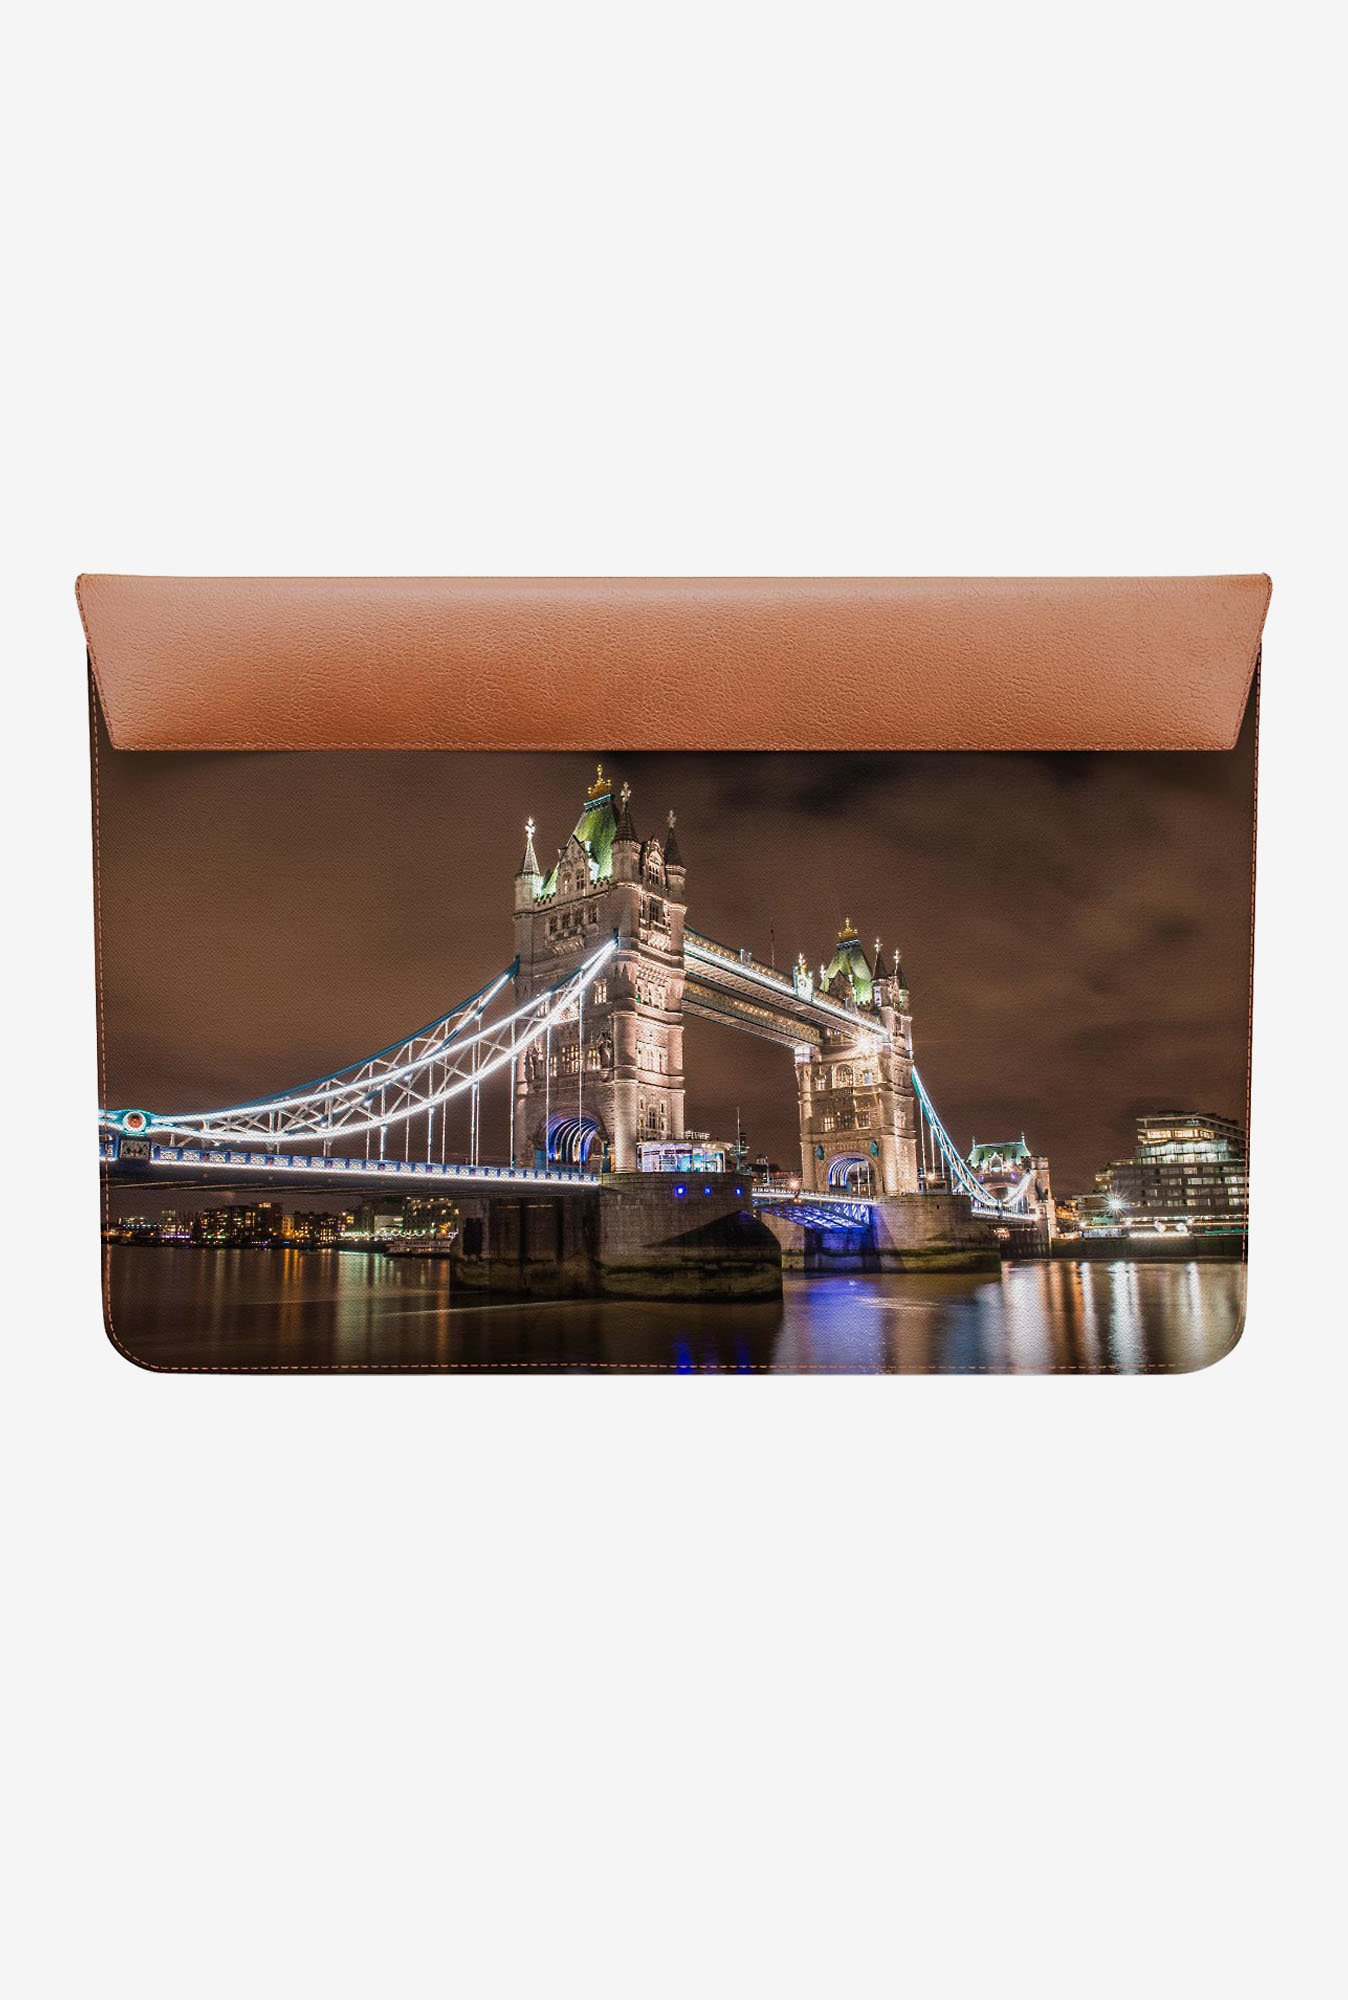 DailyObjects Bridge Lit up MacBook Pro 13 Envelope Sleeve